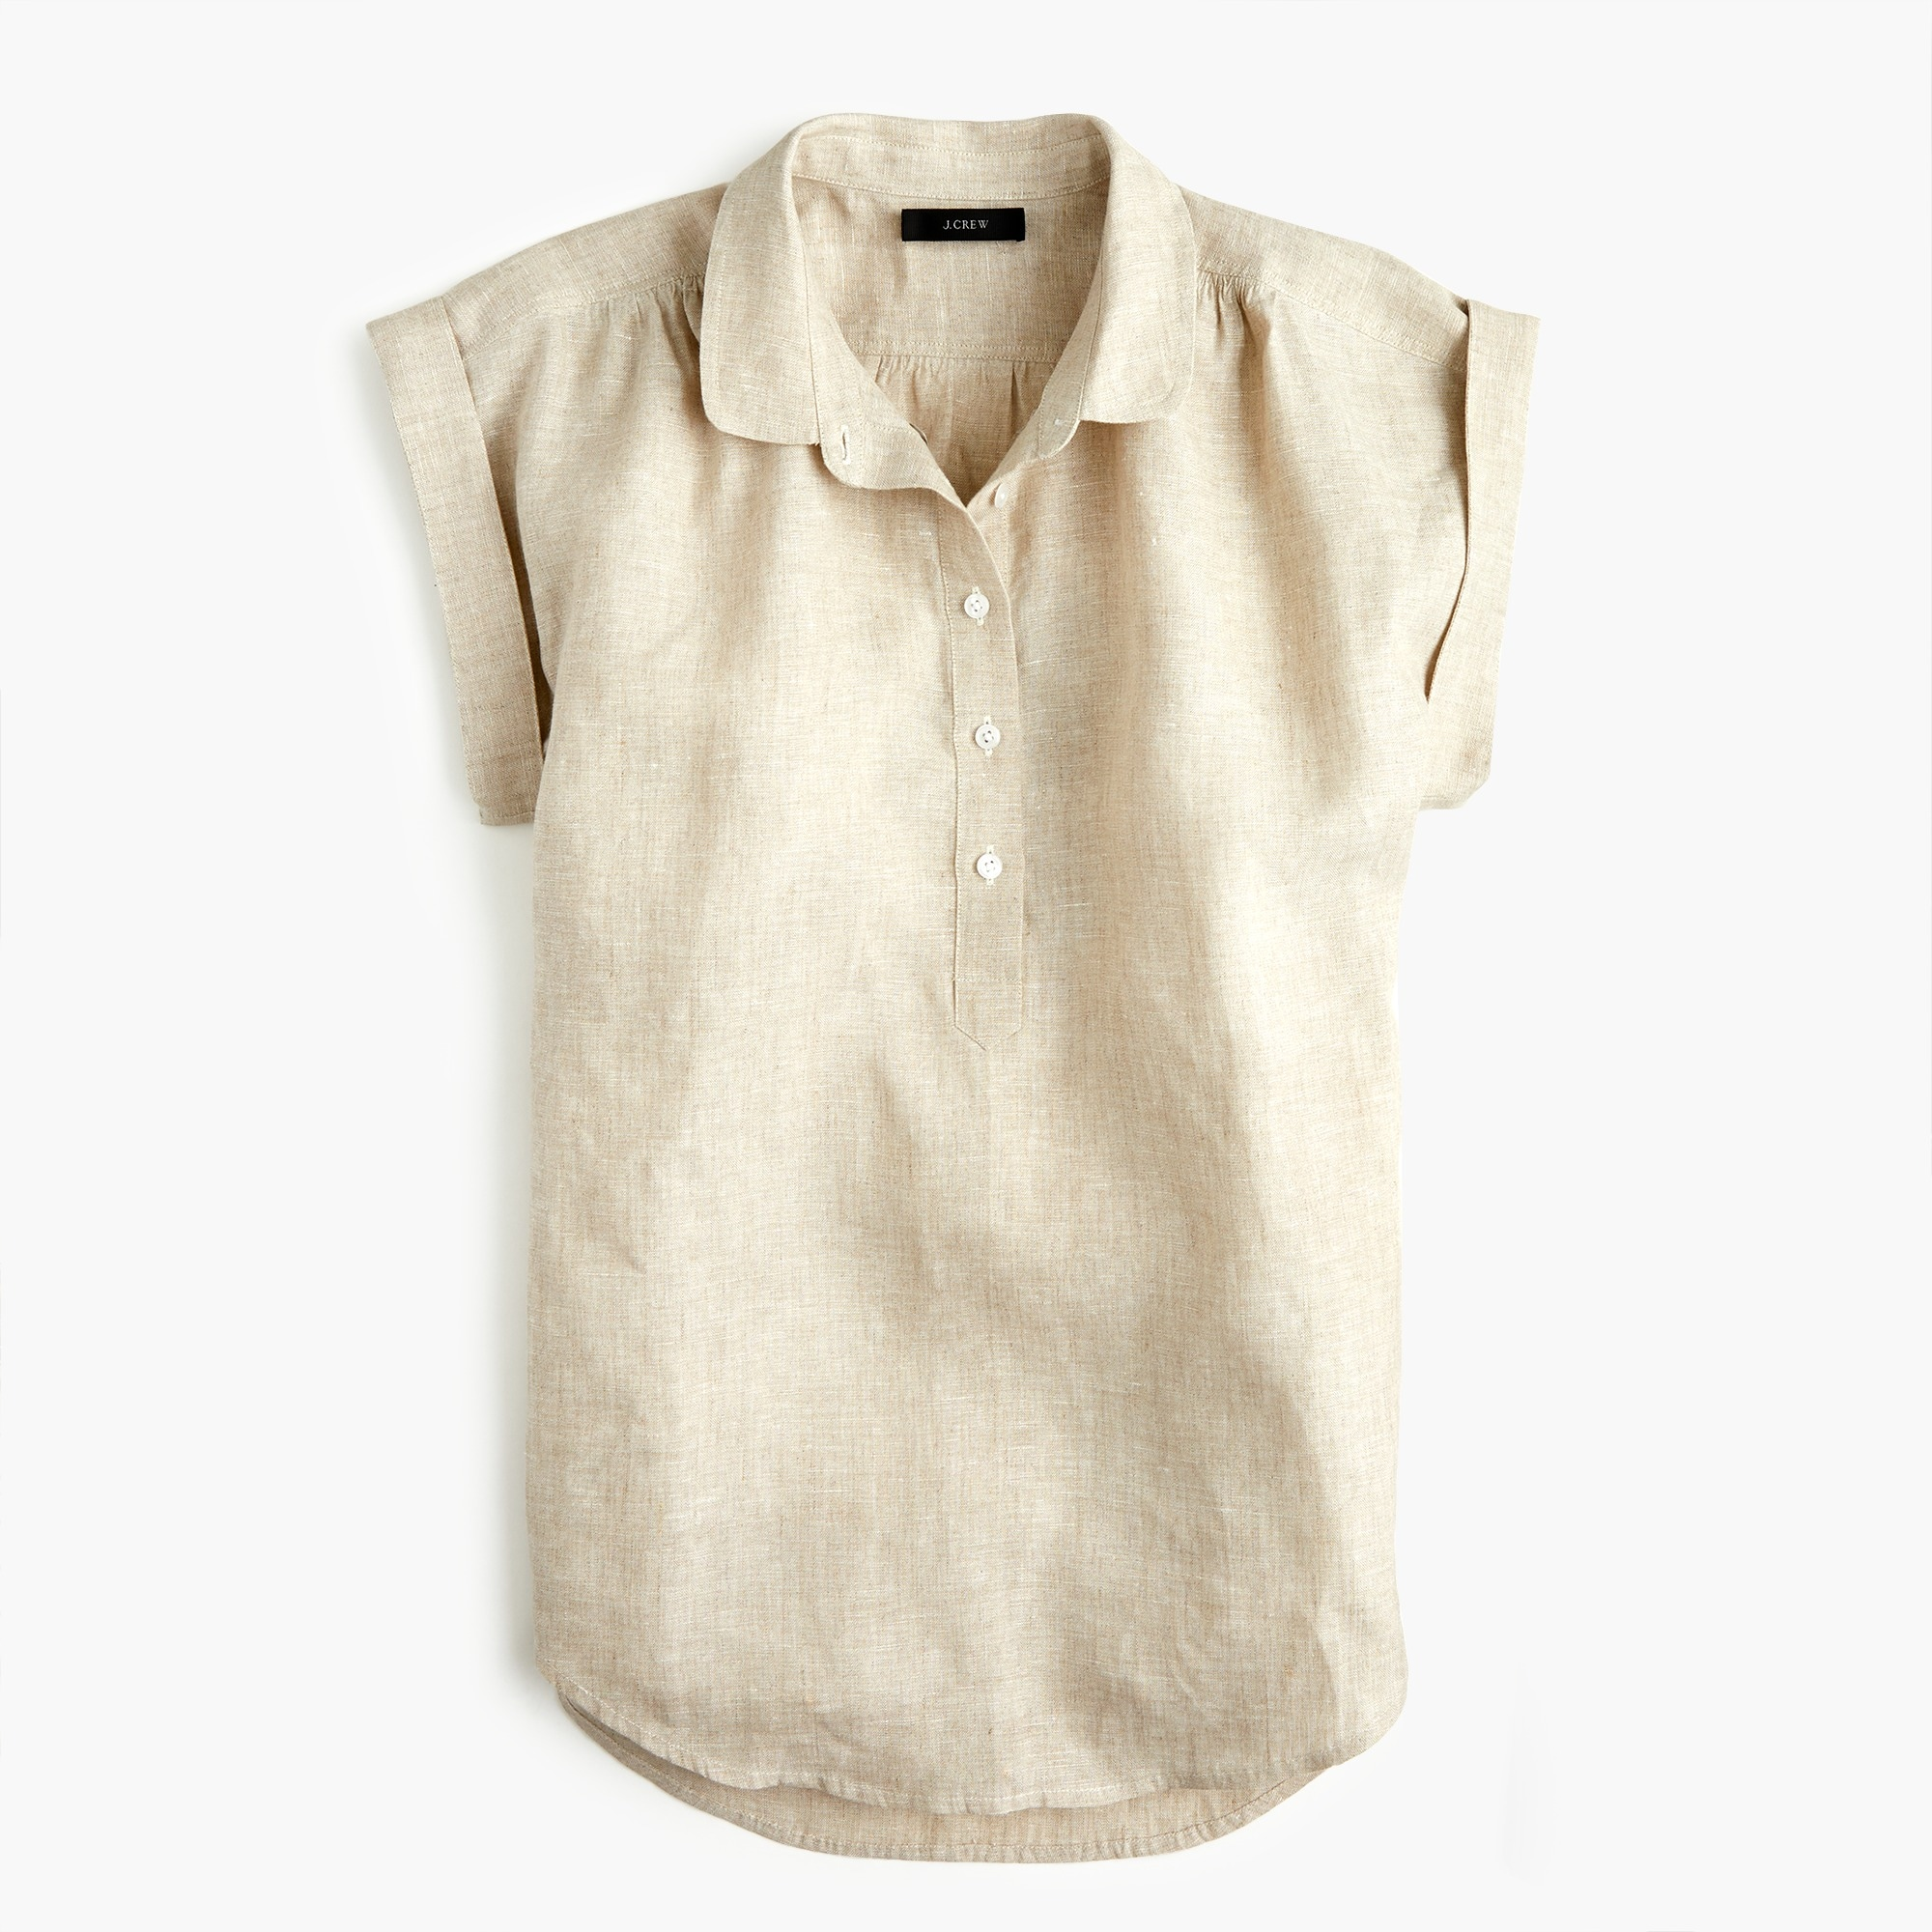 Image 1 for Petite collared popover shirt in cross-dyed linen